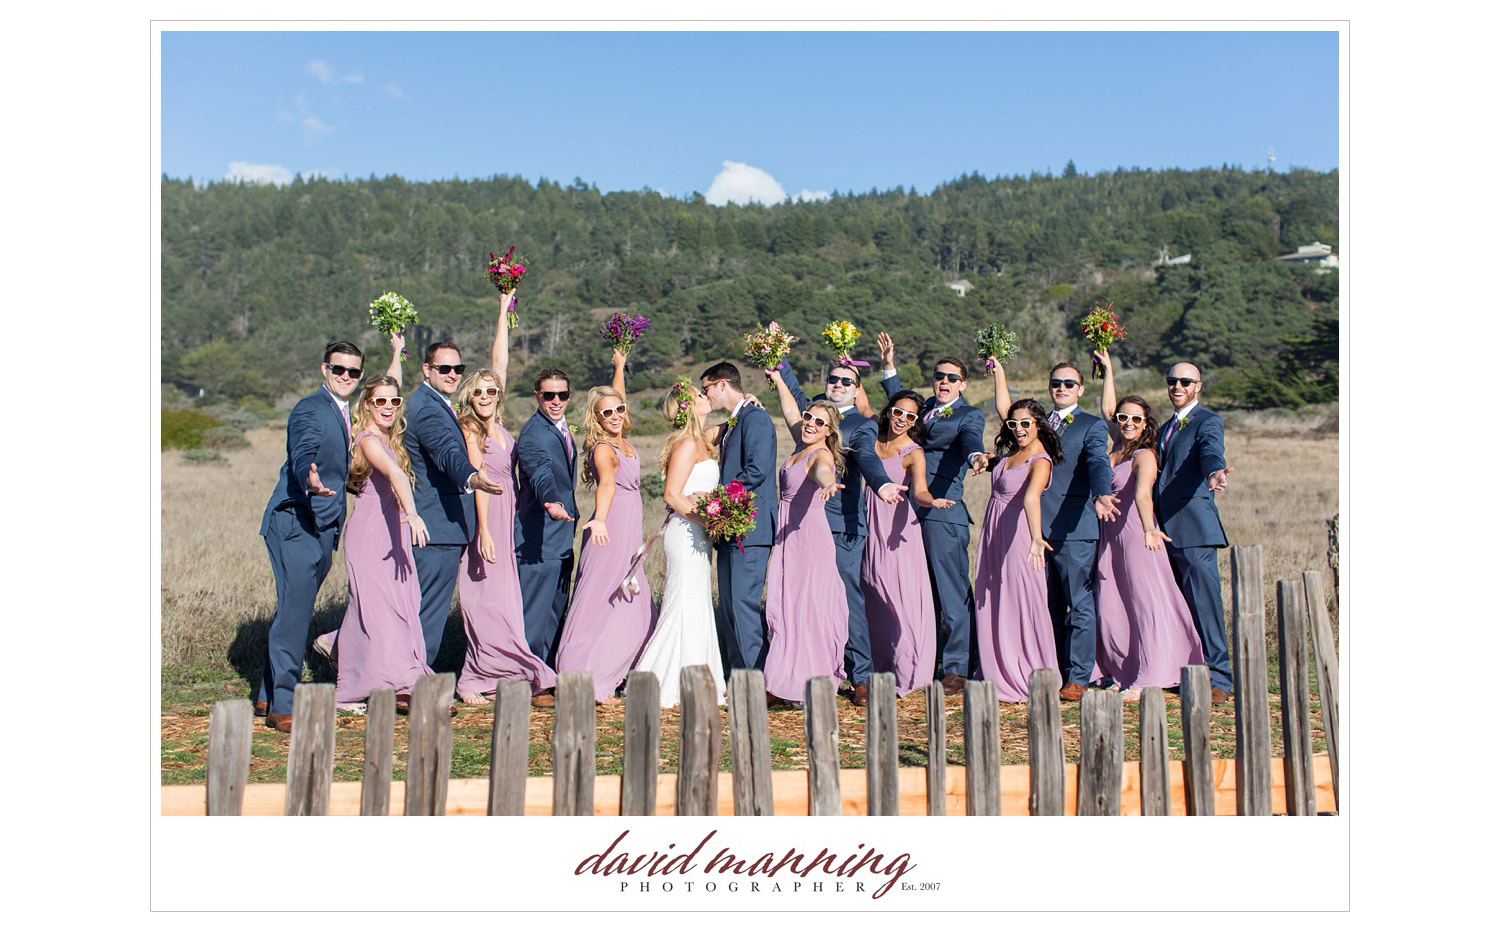 Sea-Ranch-Sonoma-Destination-Wedding-David-Manning-Photographers-141101-0022.jpg